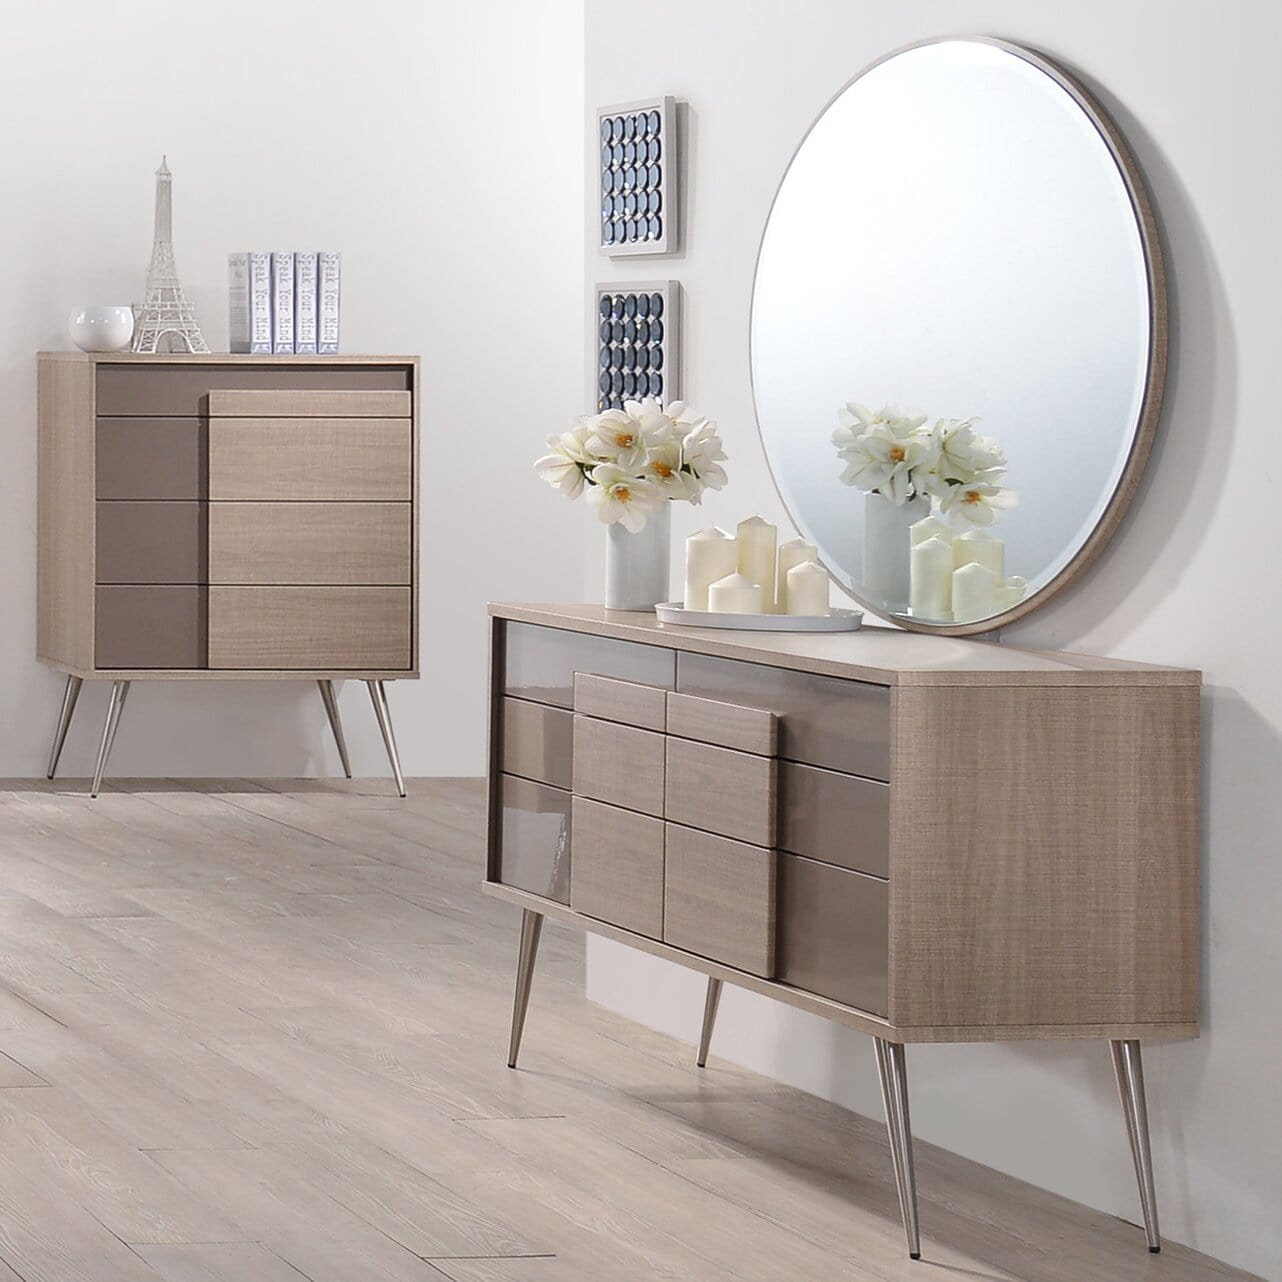 Bulluck 6 Drawer Double Dresser with Mirror